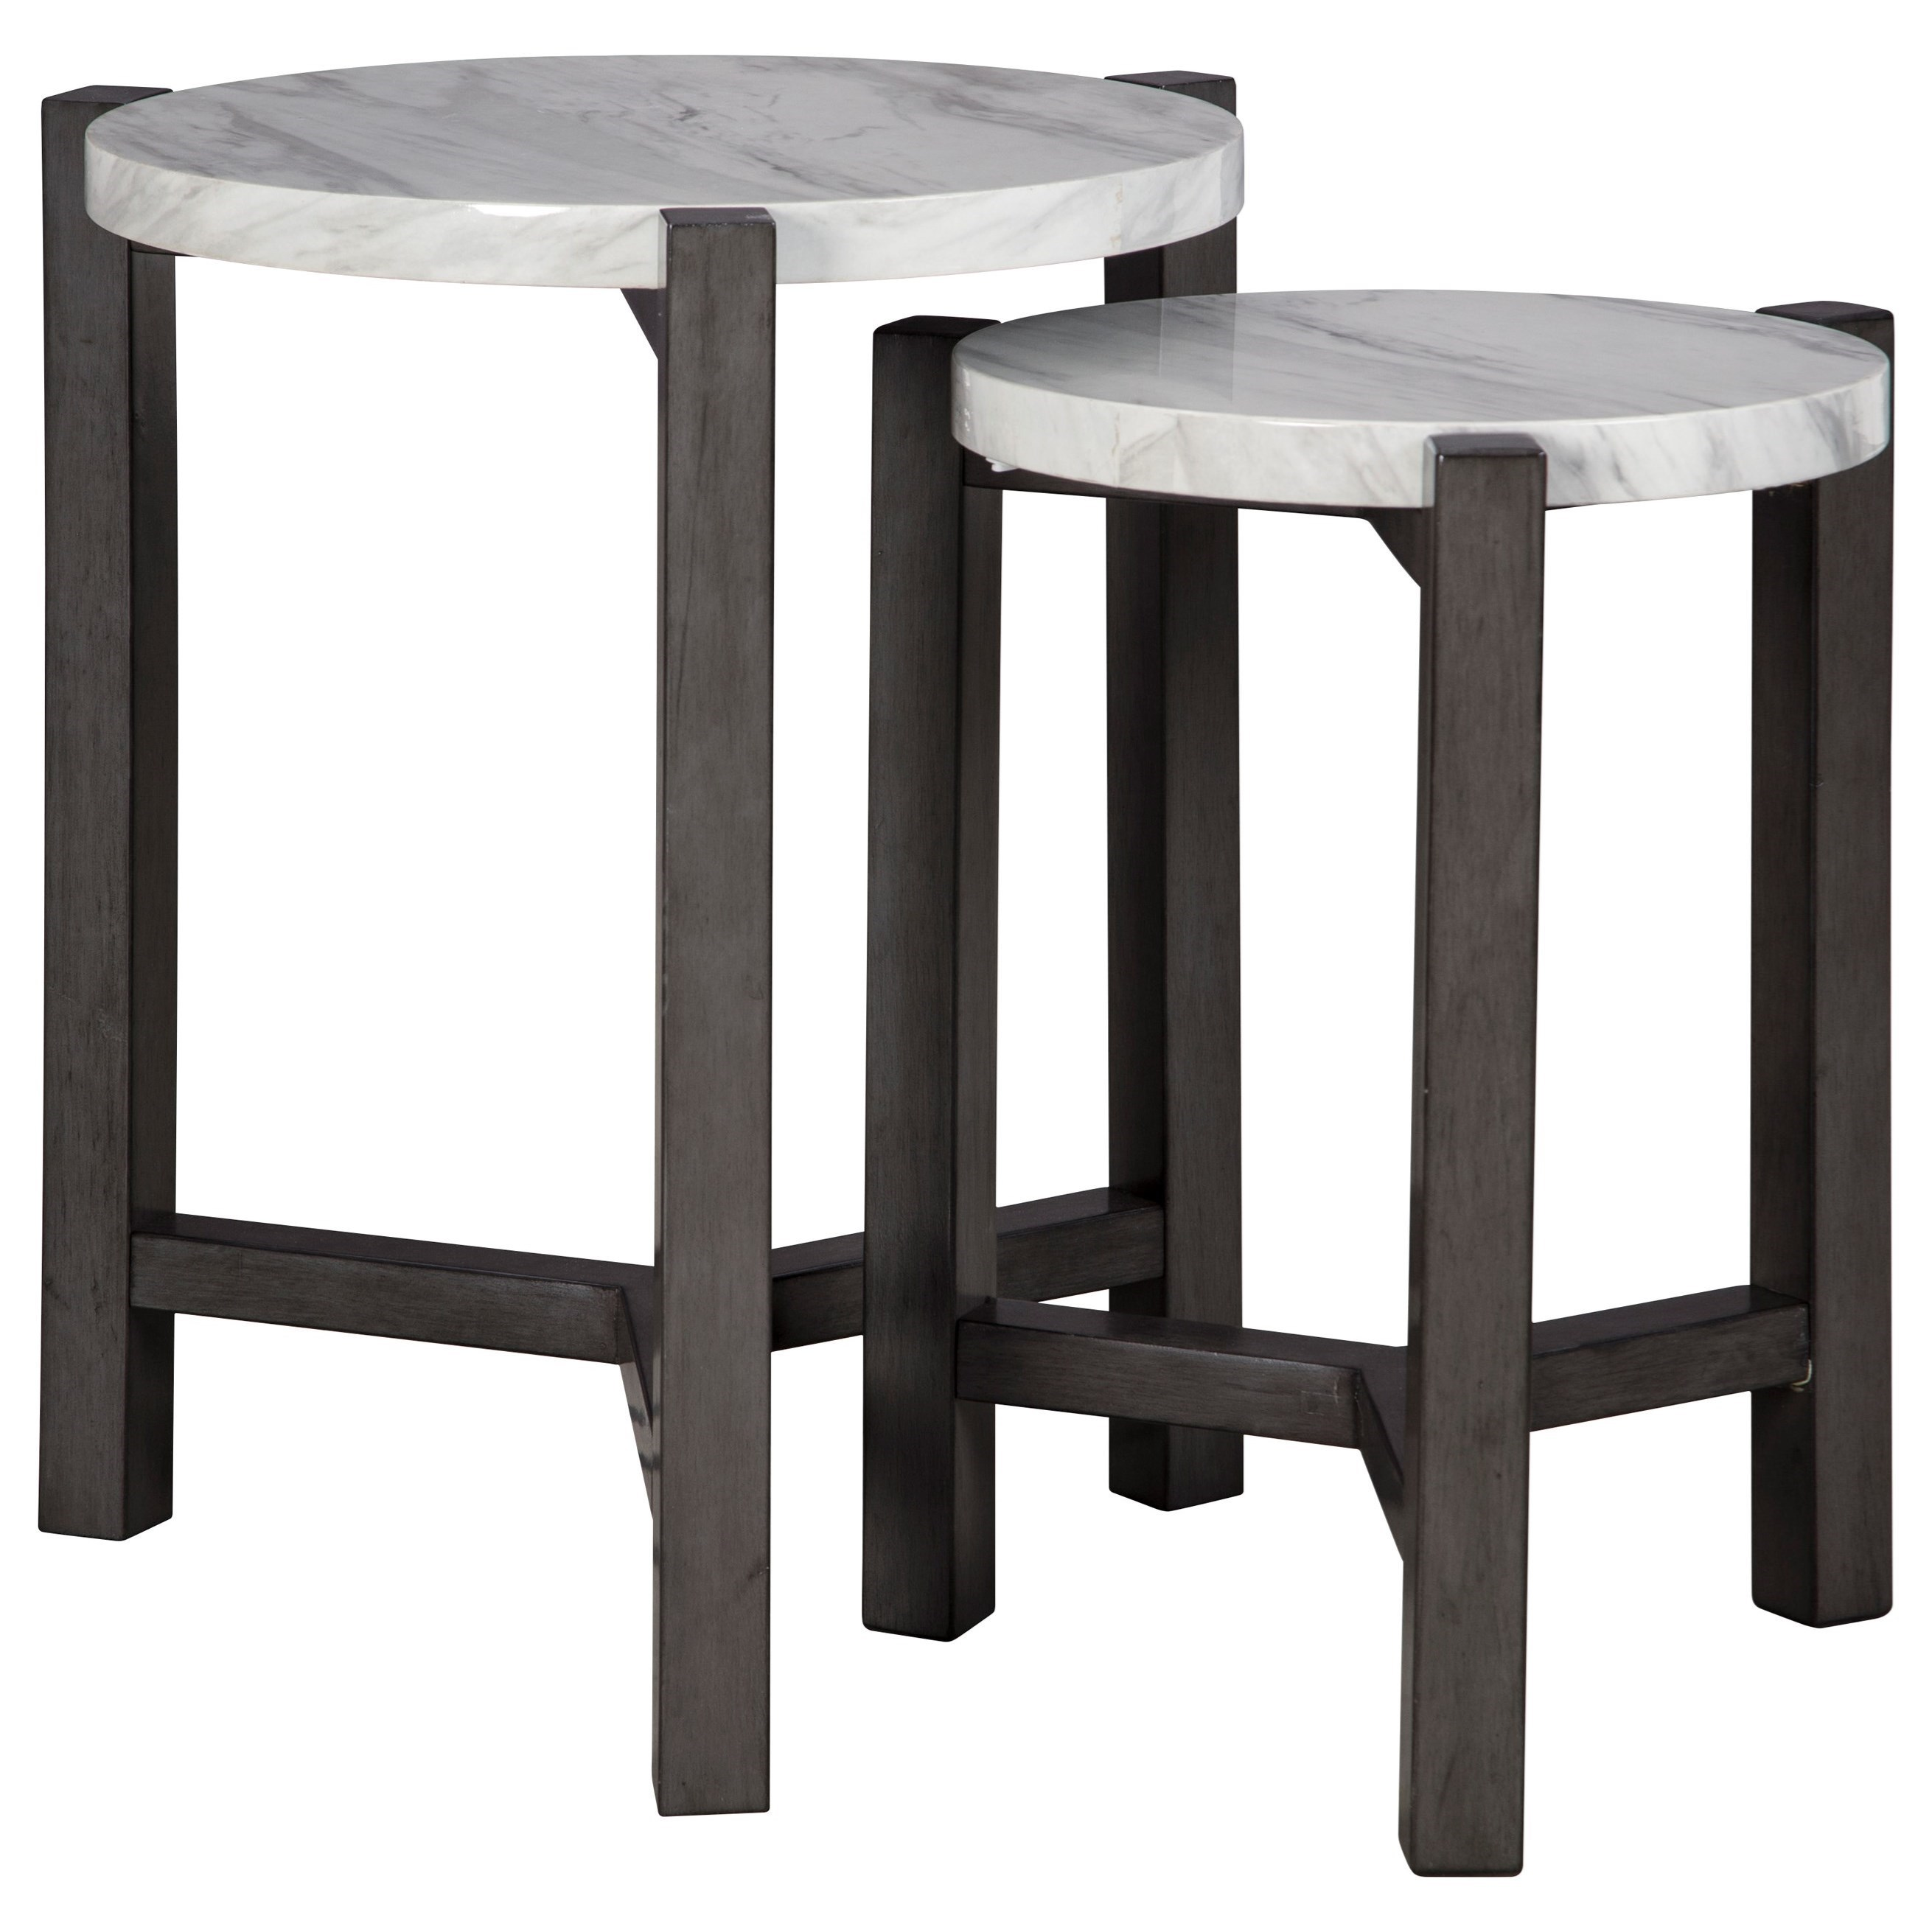 2-Piece Nesting Accent Table Set with White Marble-Look Tops